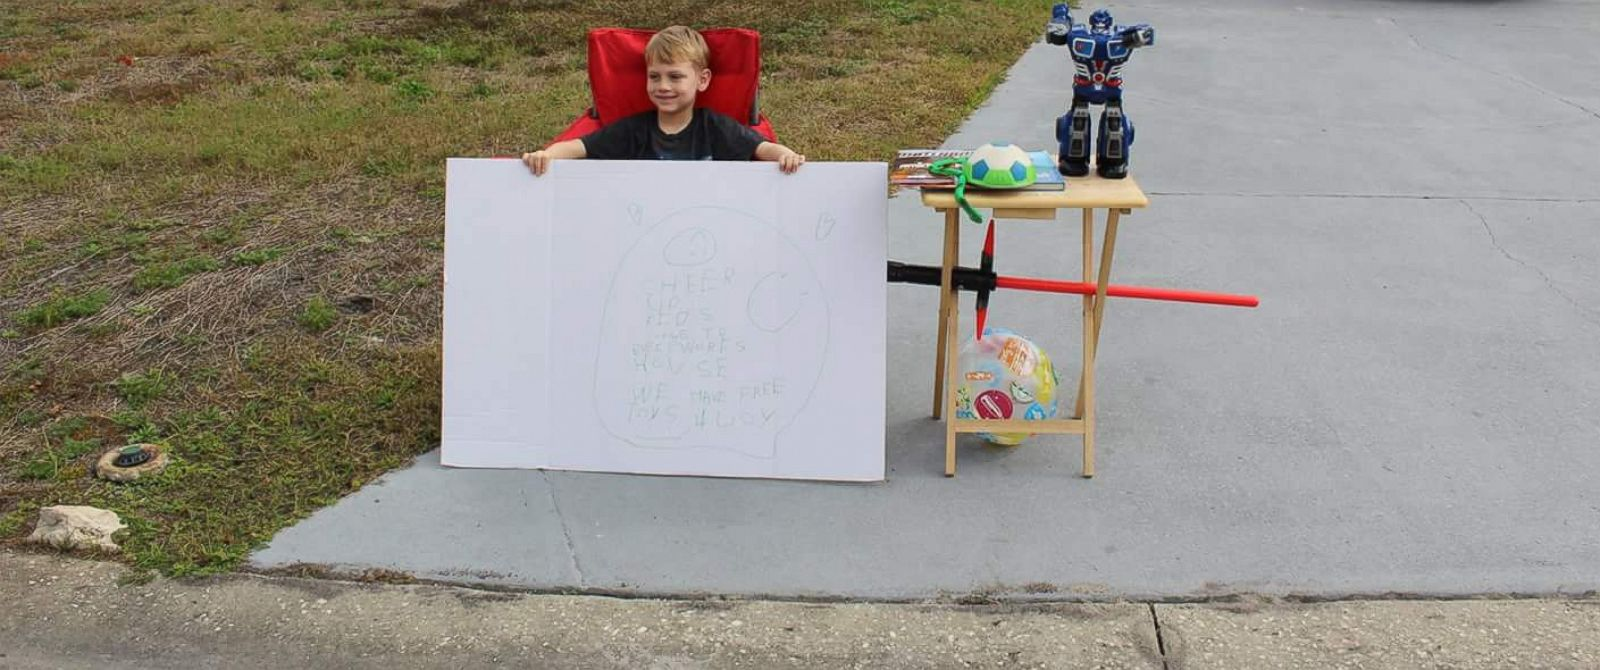 """PHOTO: Little boy, Blake Work, paid it forward by holding a """"free toy"""" stand for children who are less fortunate."""